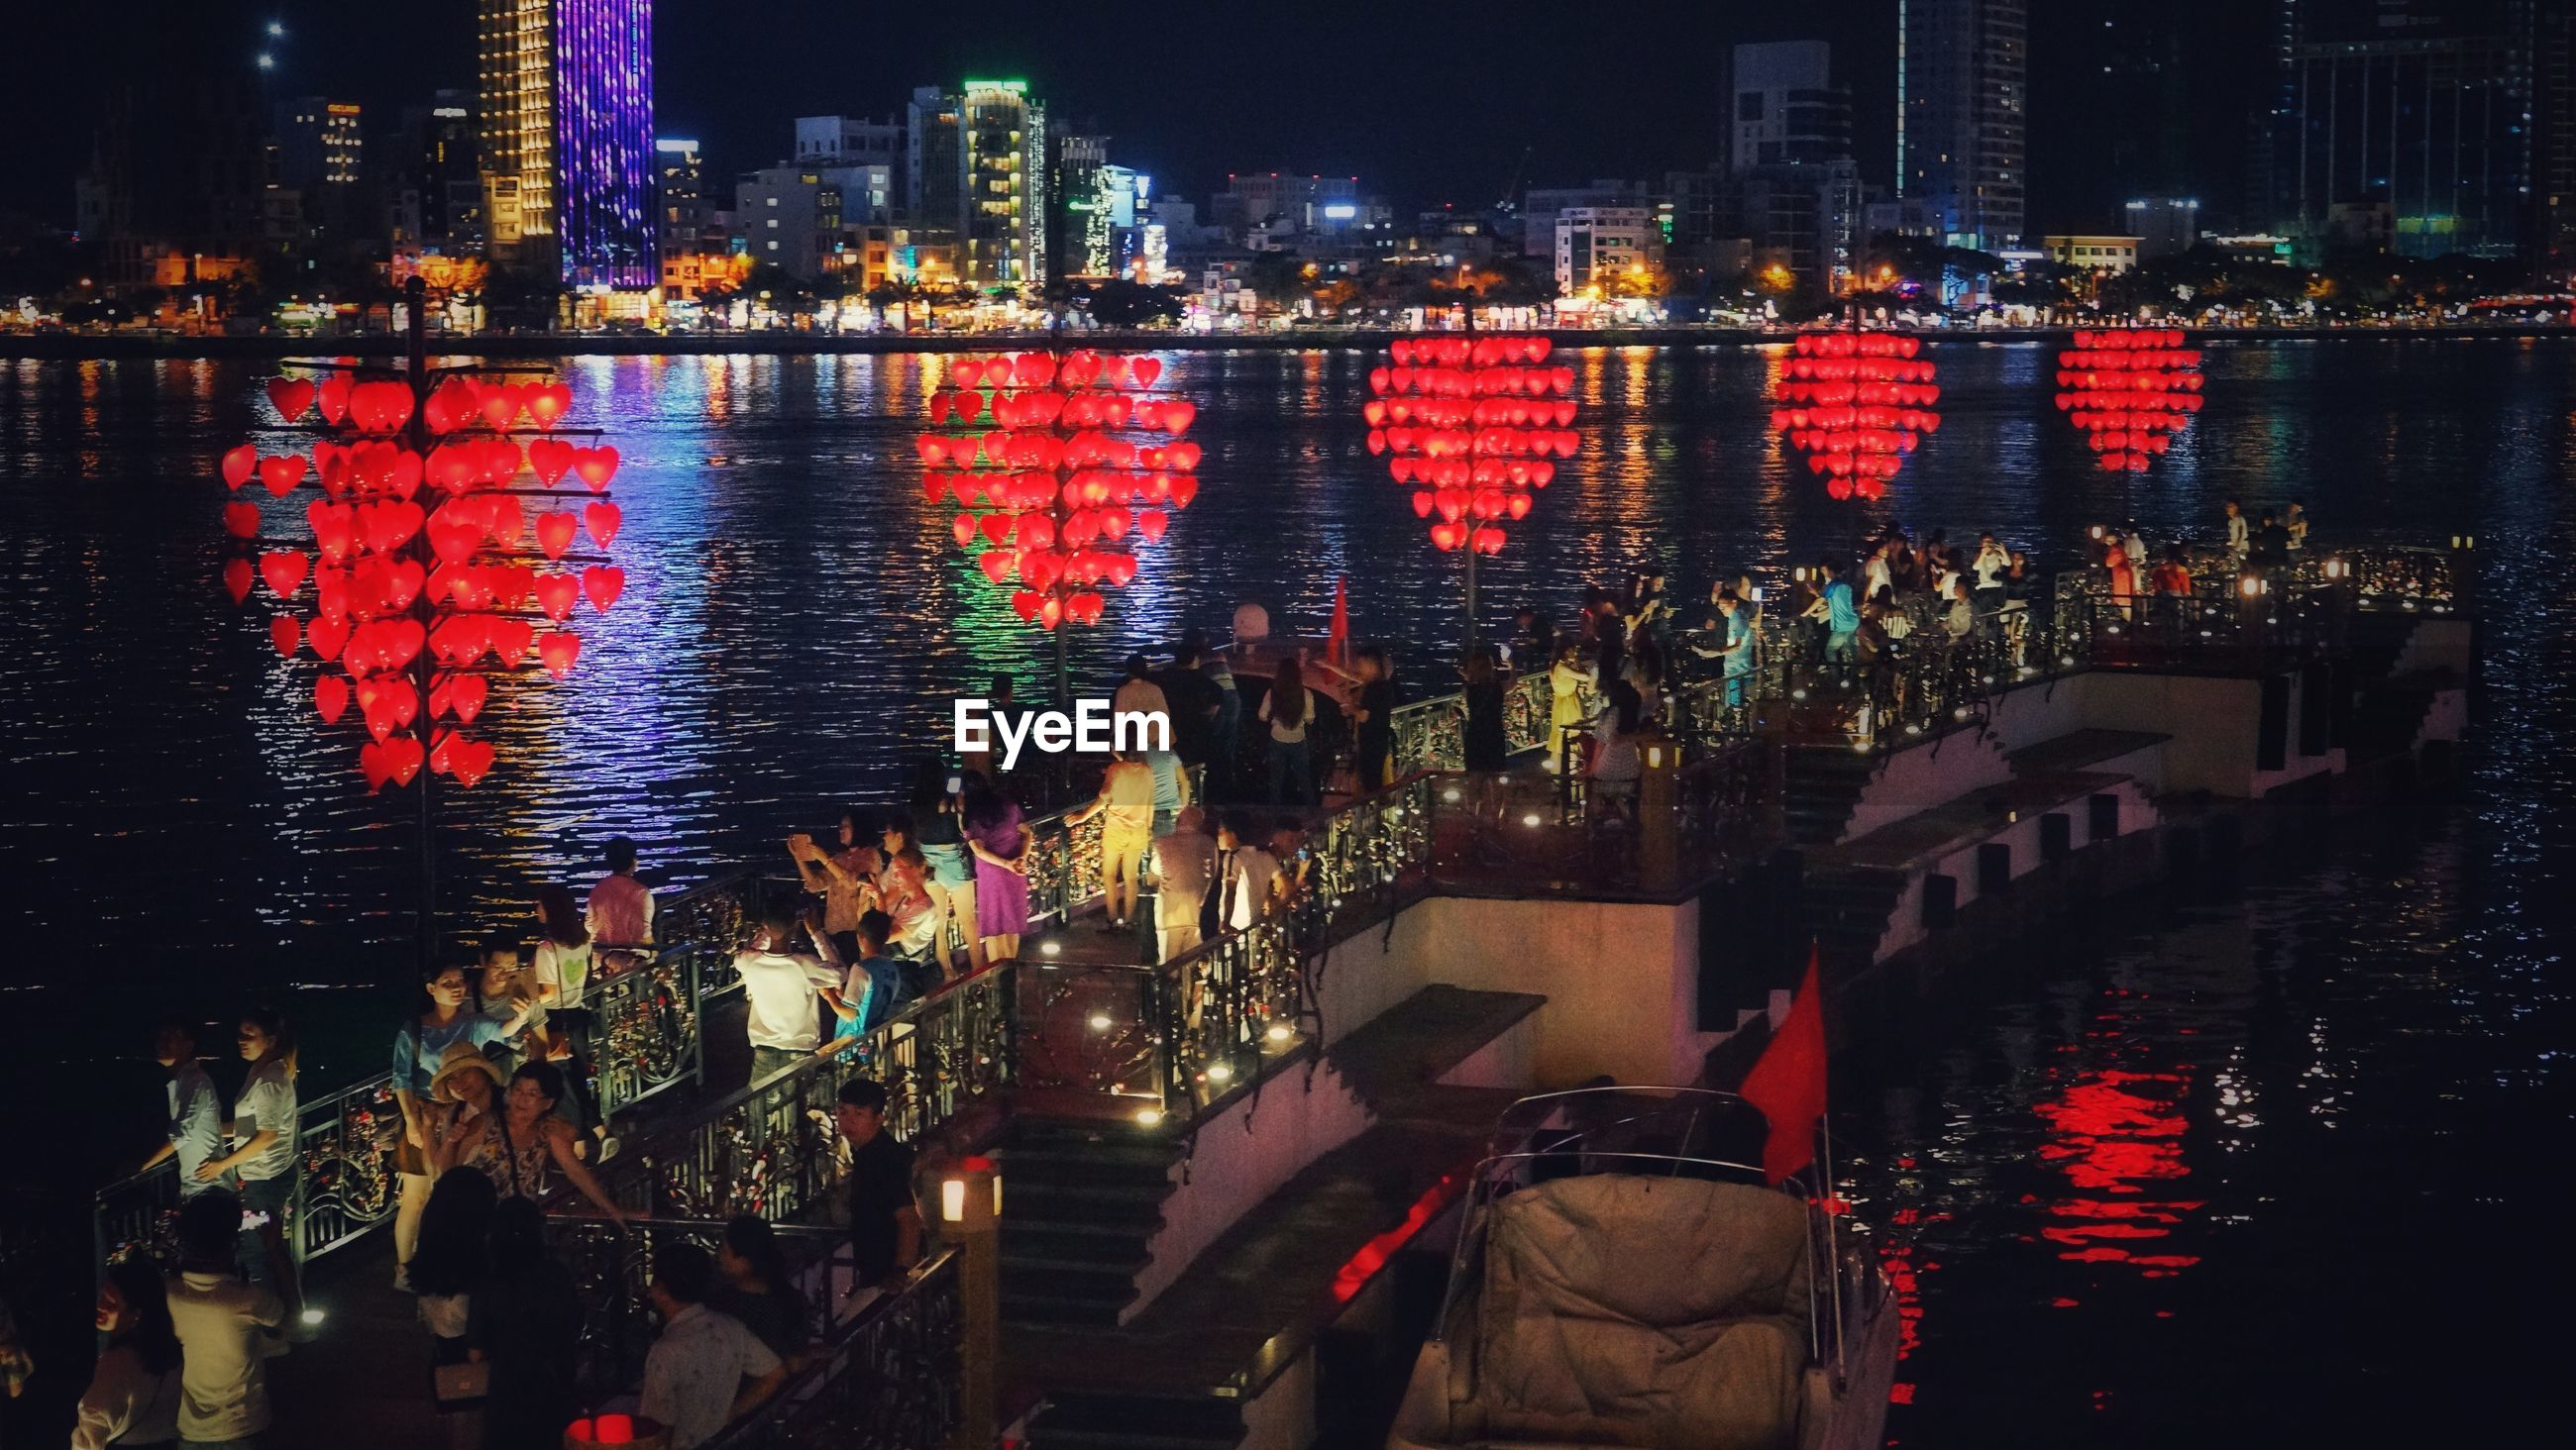 Panoramic view of crowd at illuminated city by river at night